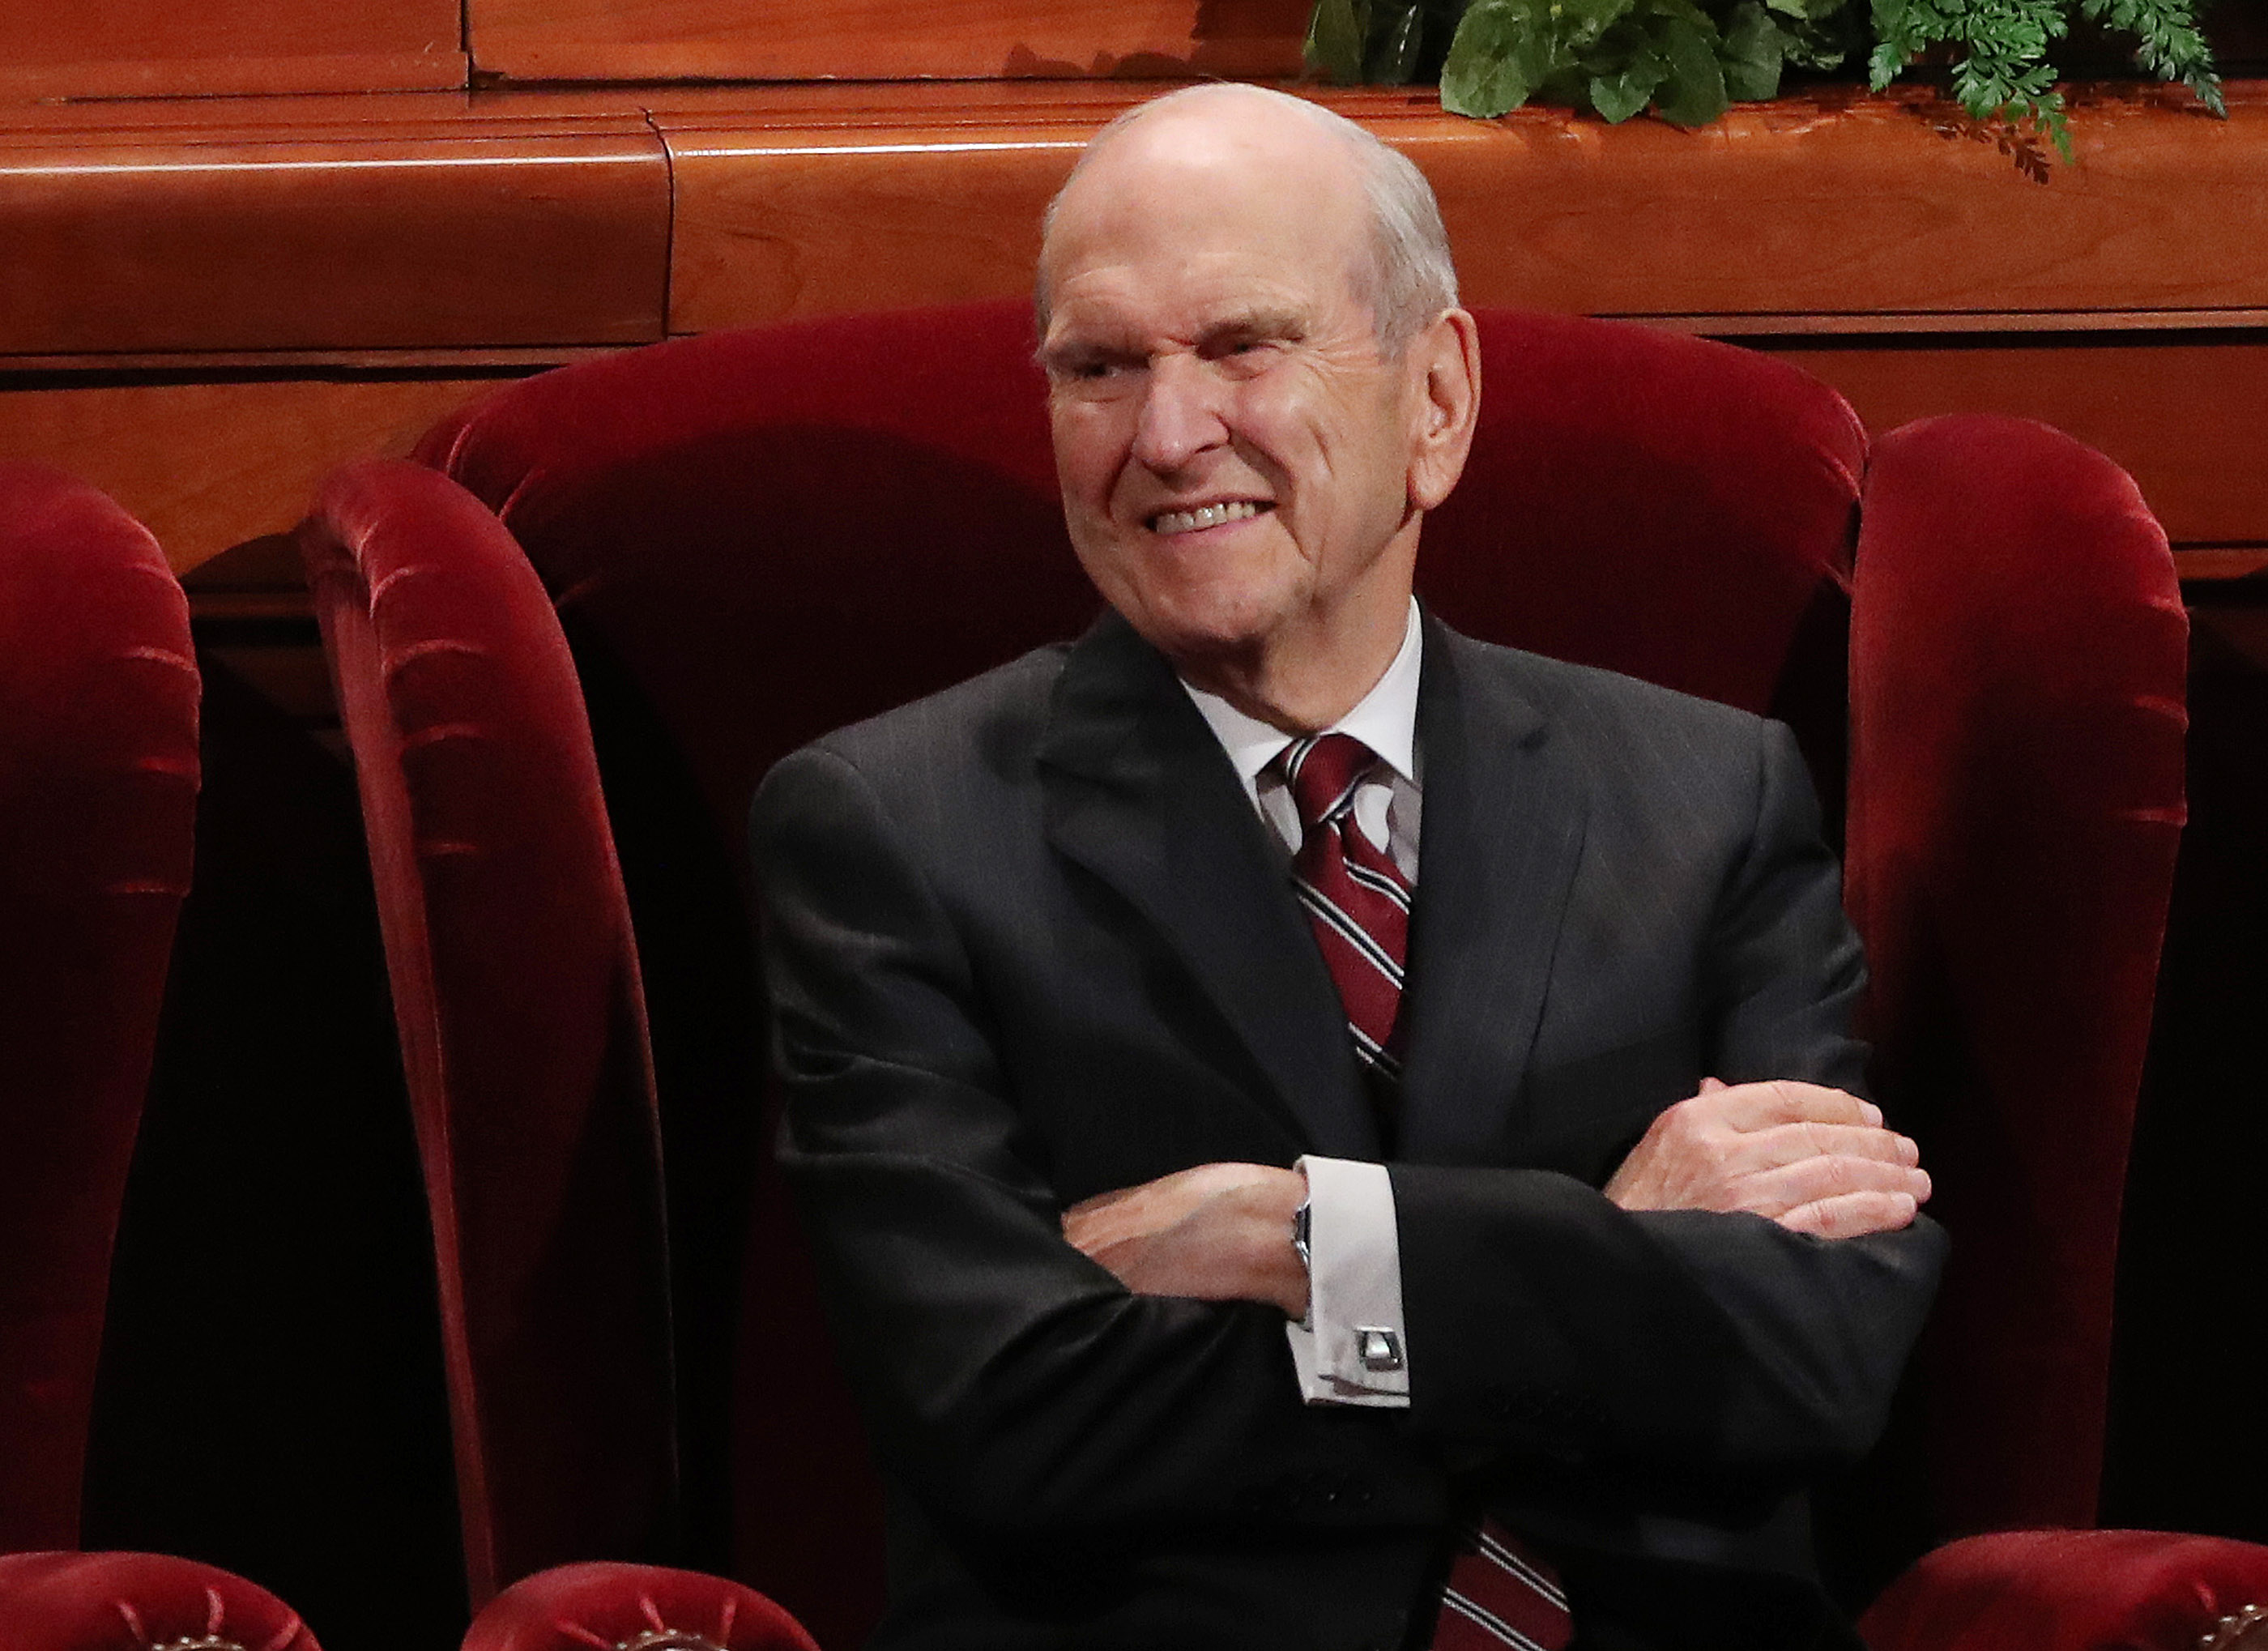 President Russell M. Nelson smiles at attendees during the Saturday afternoon session of the 188th Semiannual General Conference of The Church of Jesus Christ of Latter-day Saints in the Conference Center in Salt Lake City on Saturday, Oct. 6, 2018.